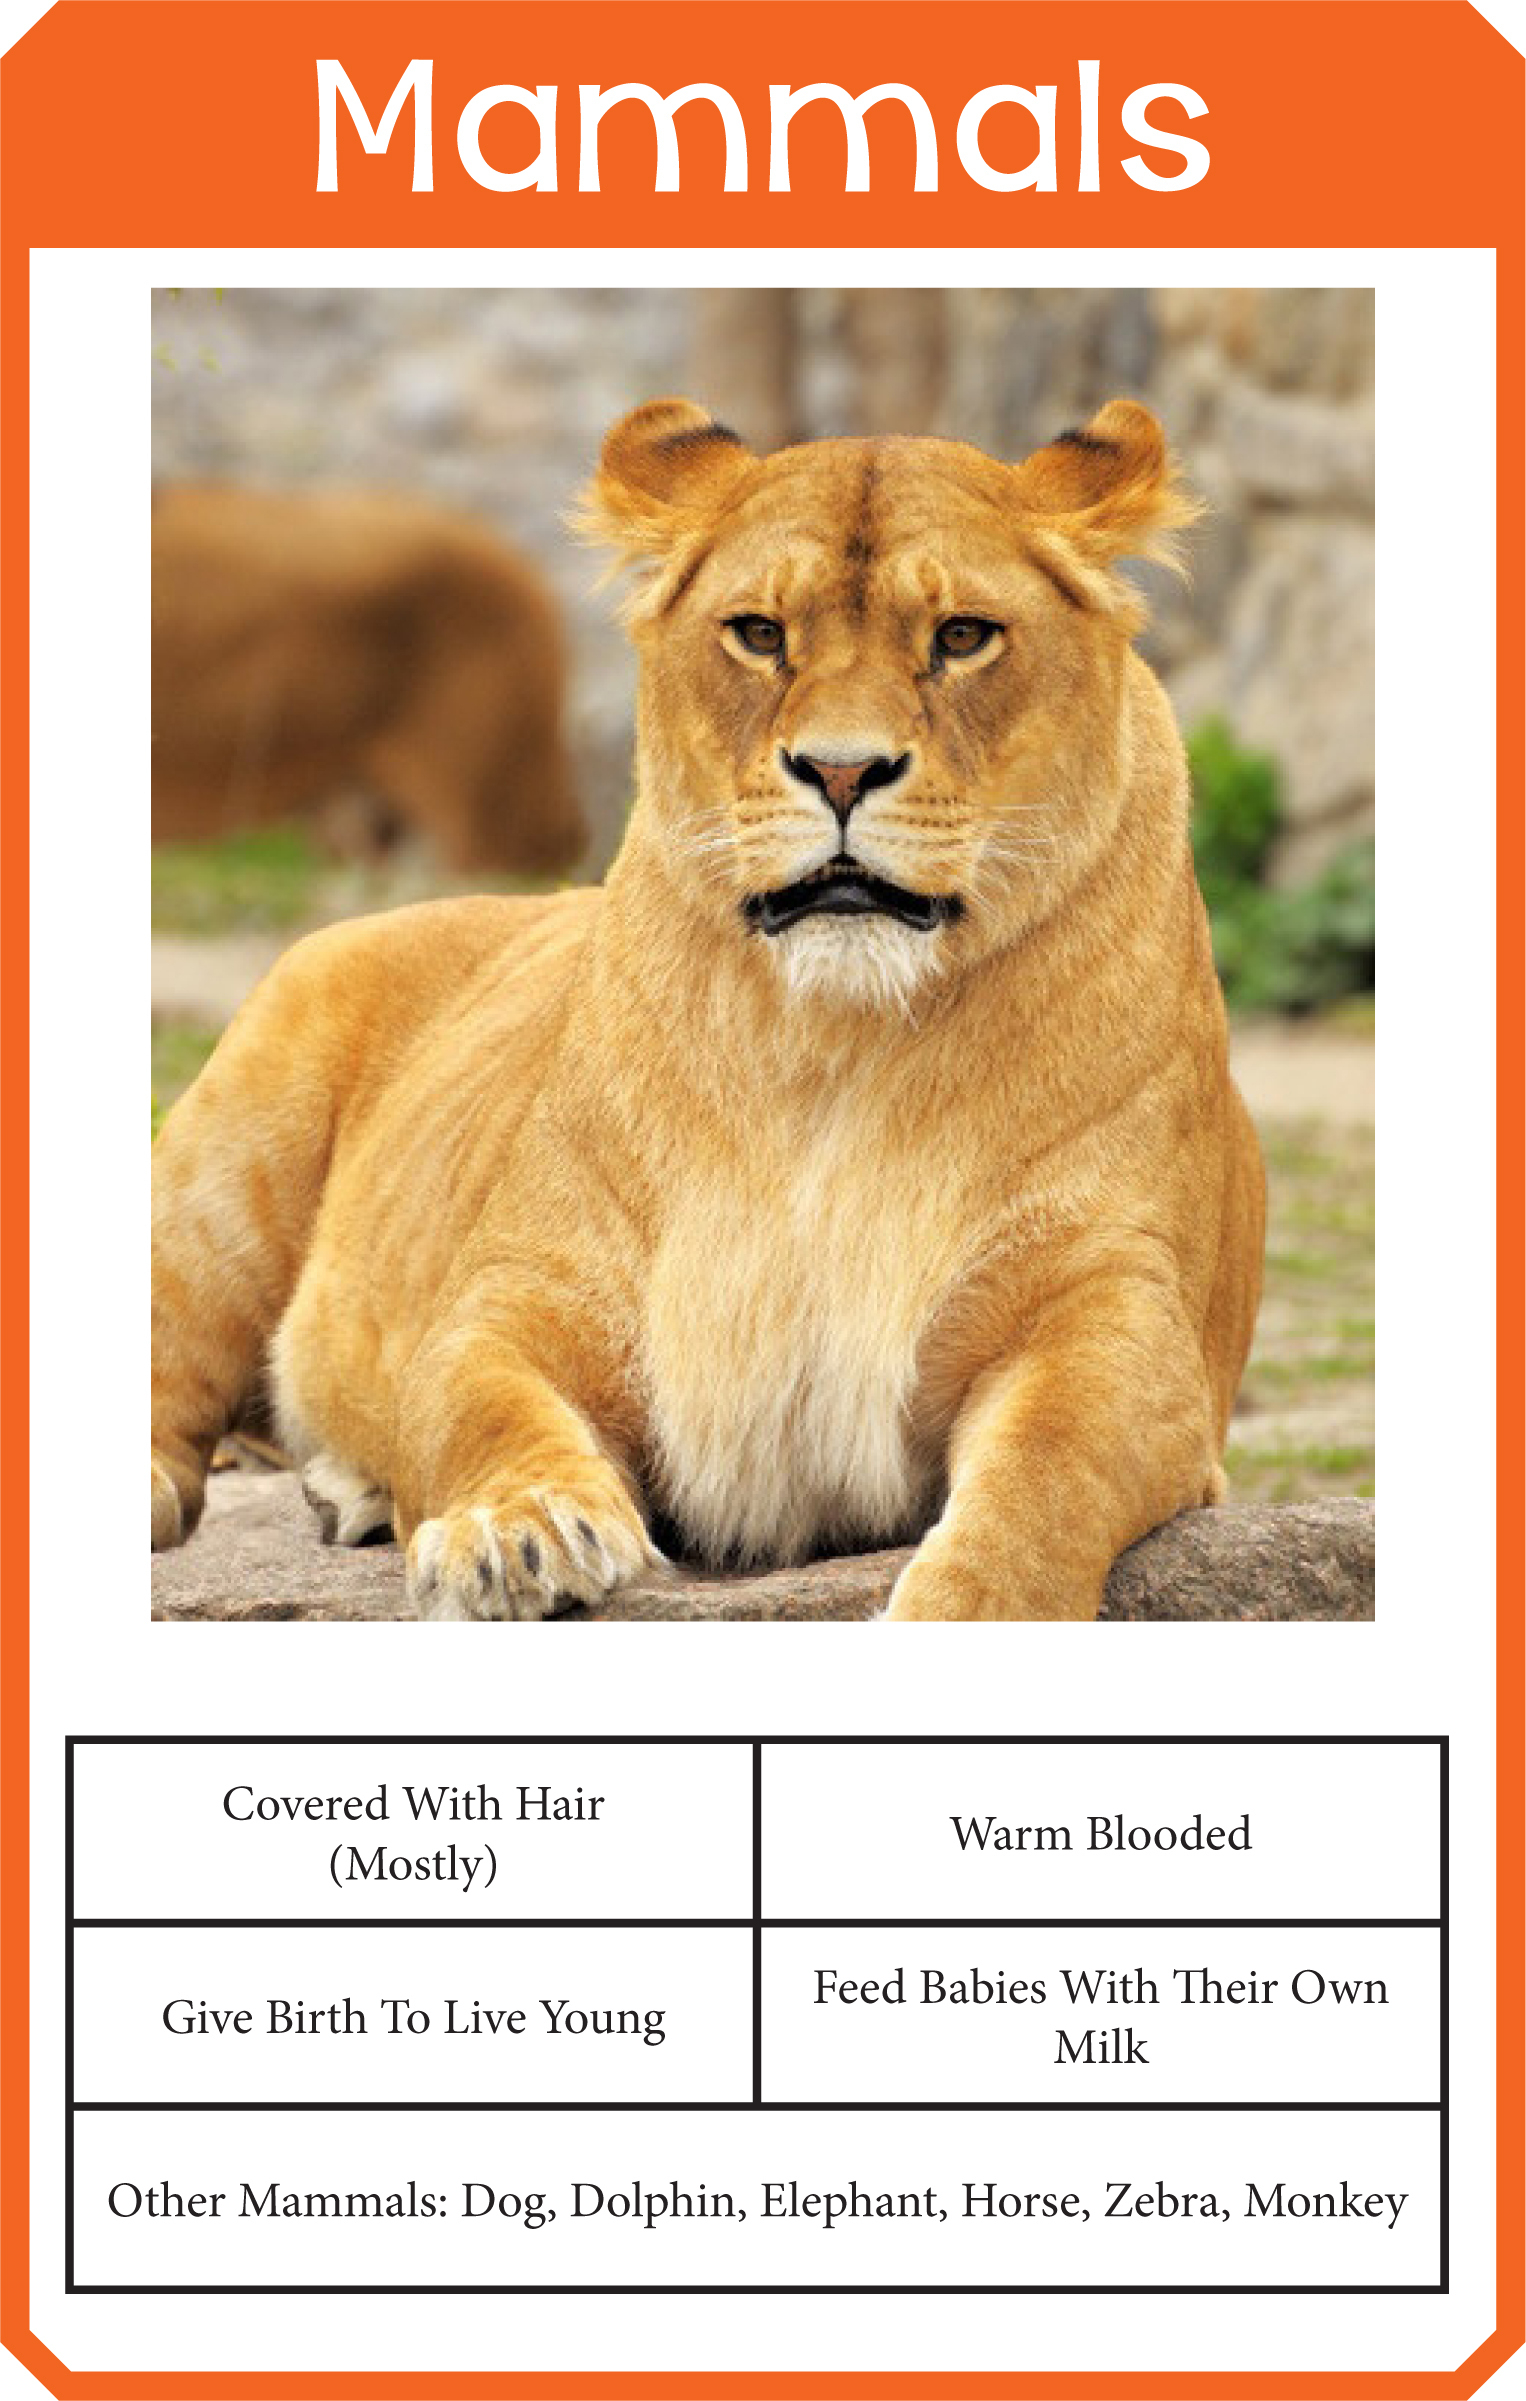 Animal Classification Cards » One Beautiful Home - Free Printable Animal Classification Cards